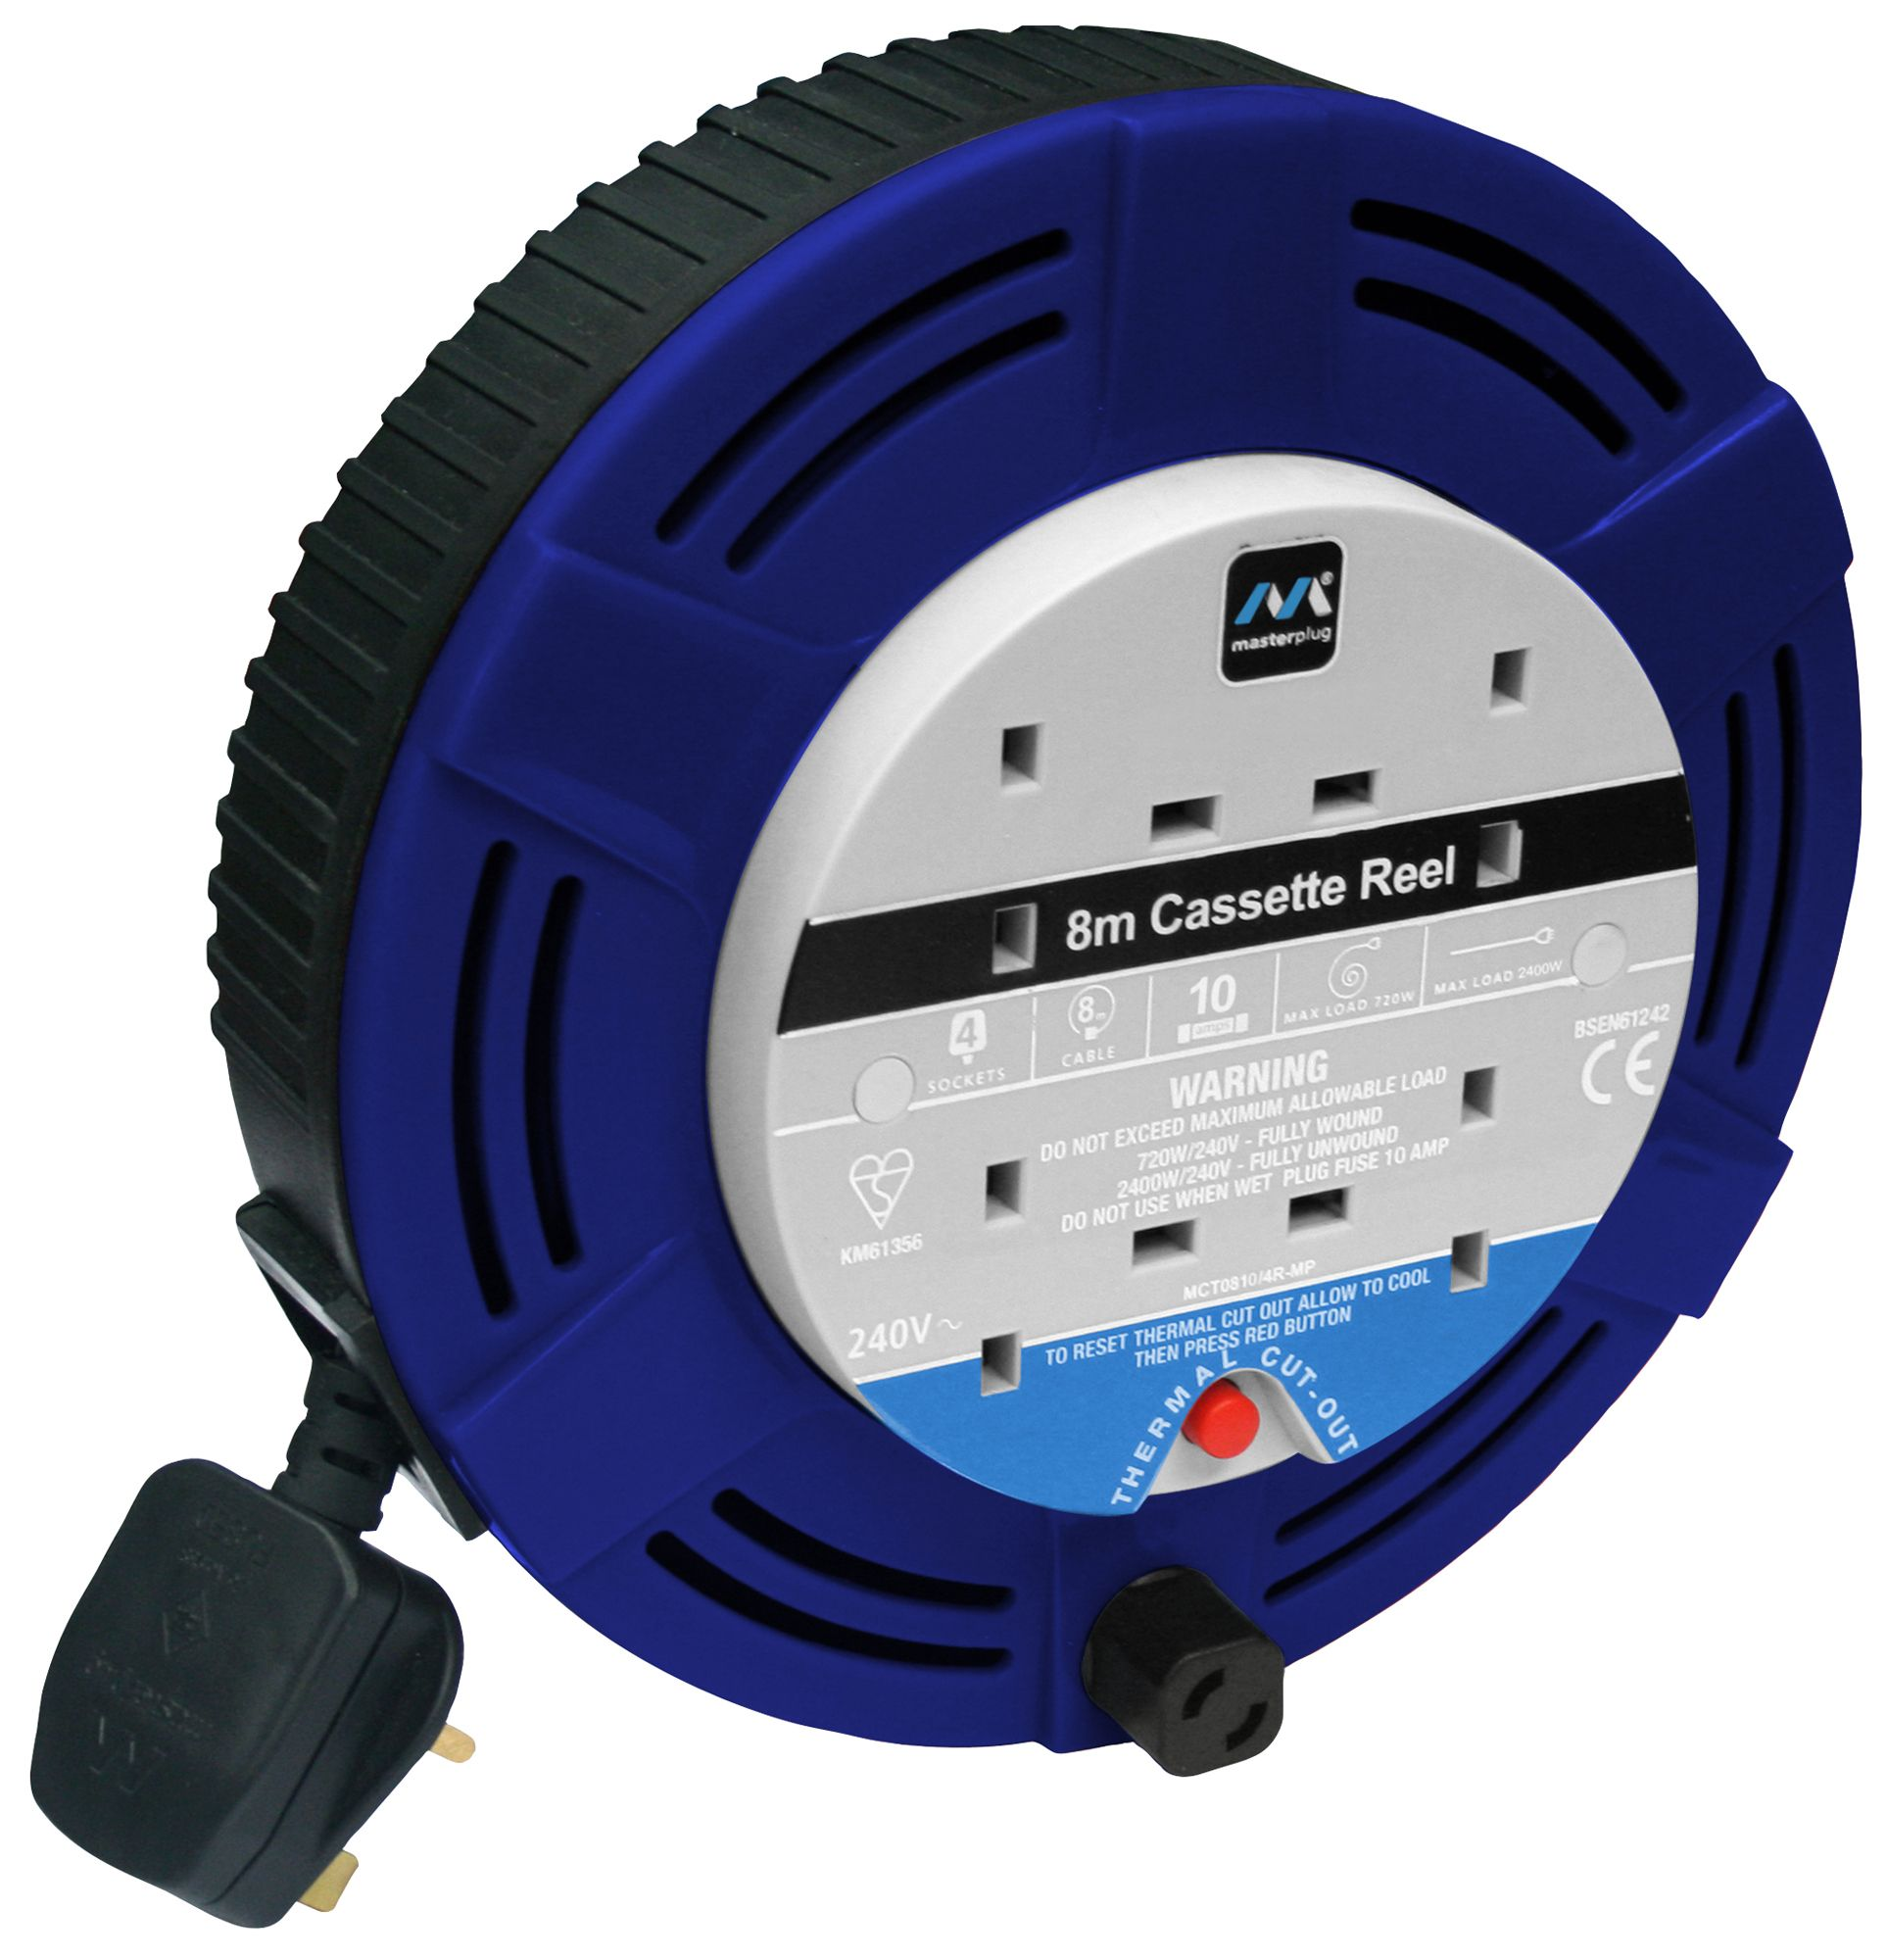 Masterplug 4 Socket 10A Cable Reel (L)8m | Departments ...